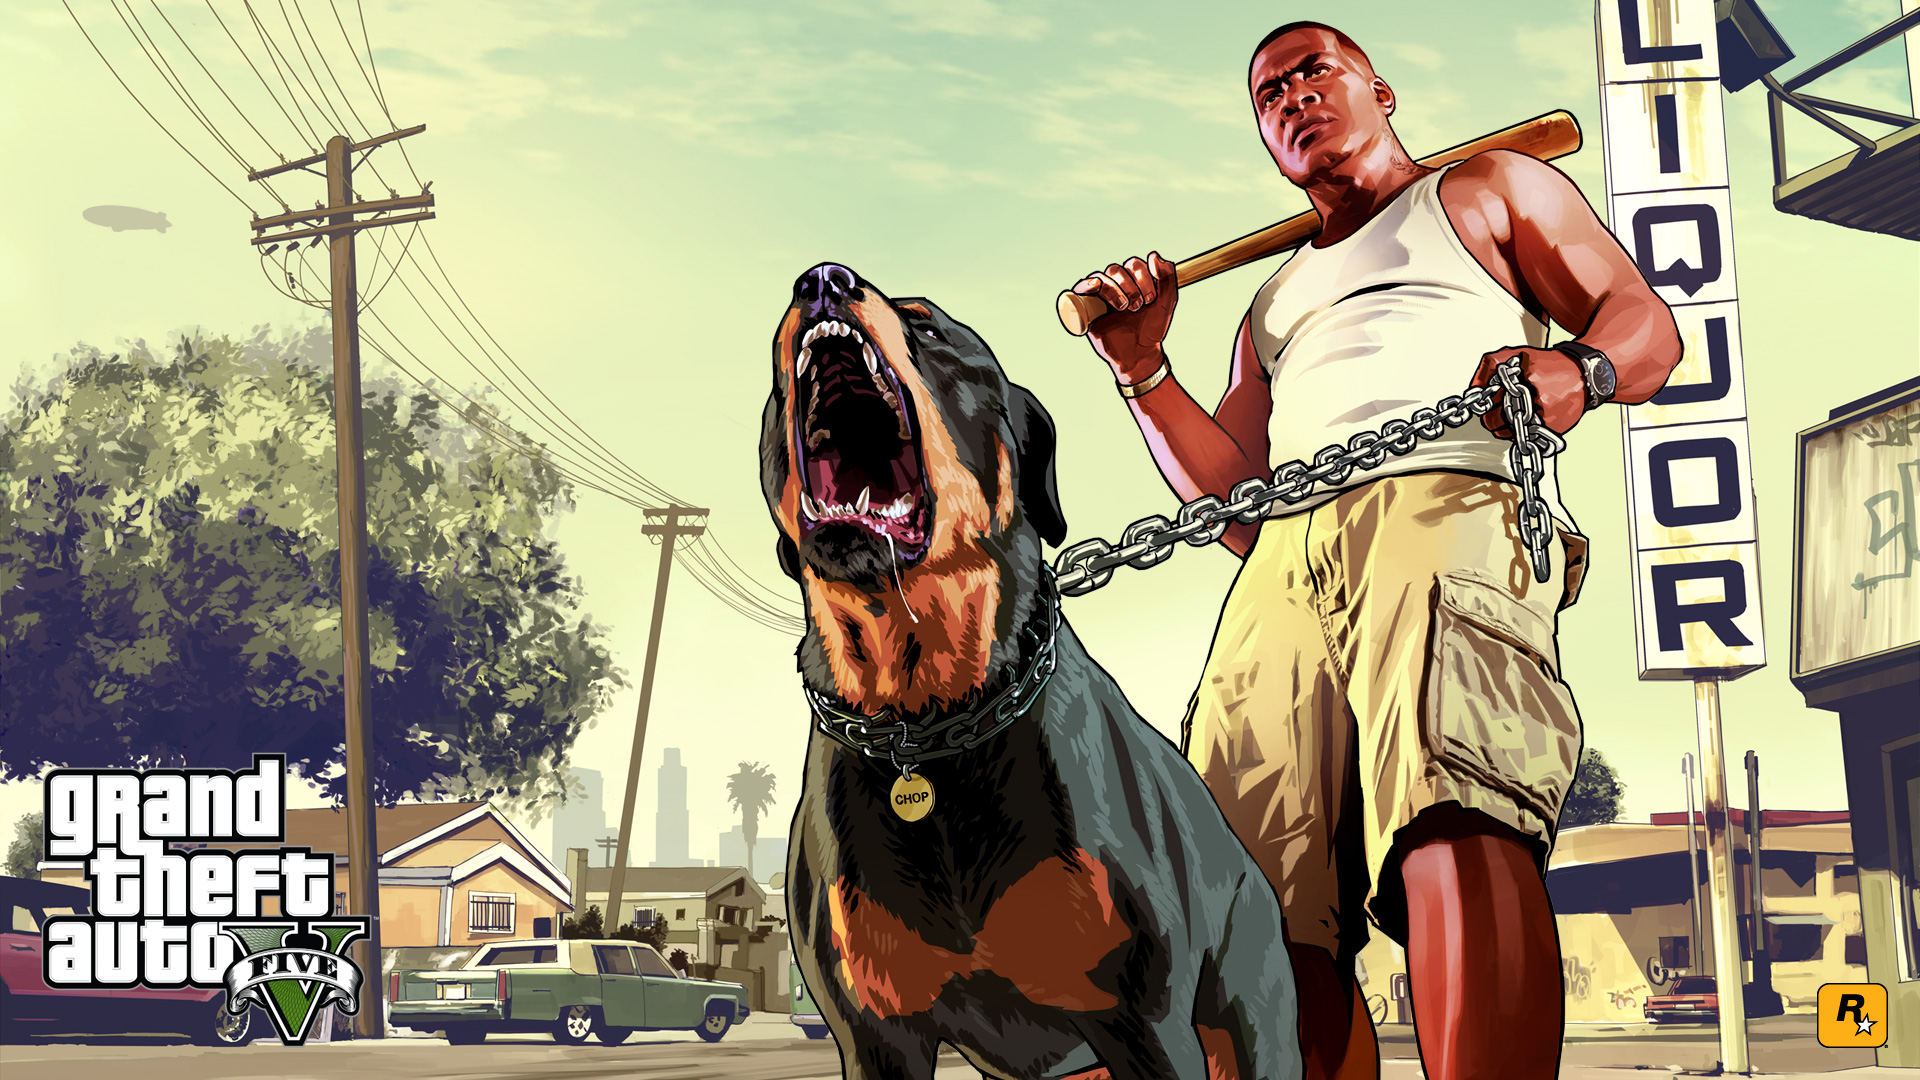 GTA 5 Wallpapers in HD Page 6 1920x1080